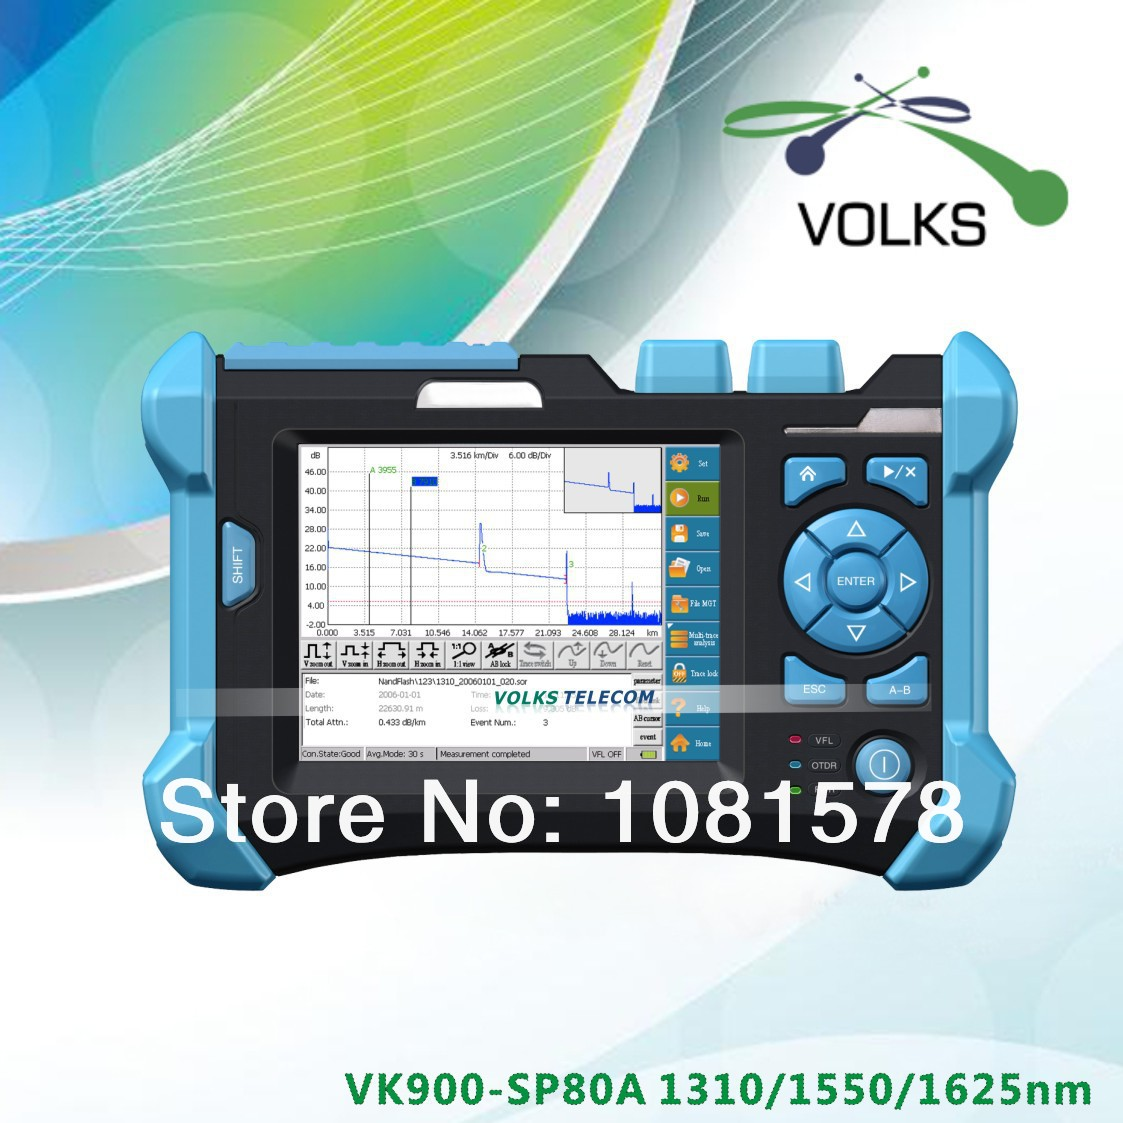 1310/1550/1625nm OTDR 32/30/30dB Optical Time Domain Reflectometer ...